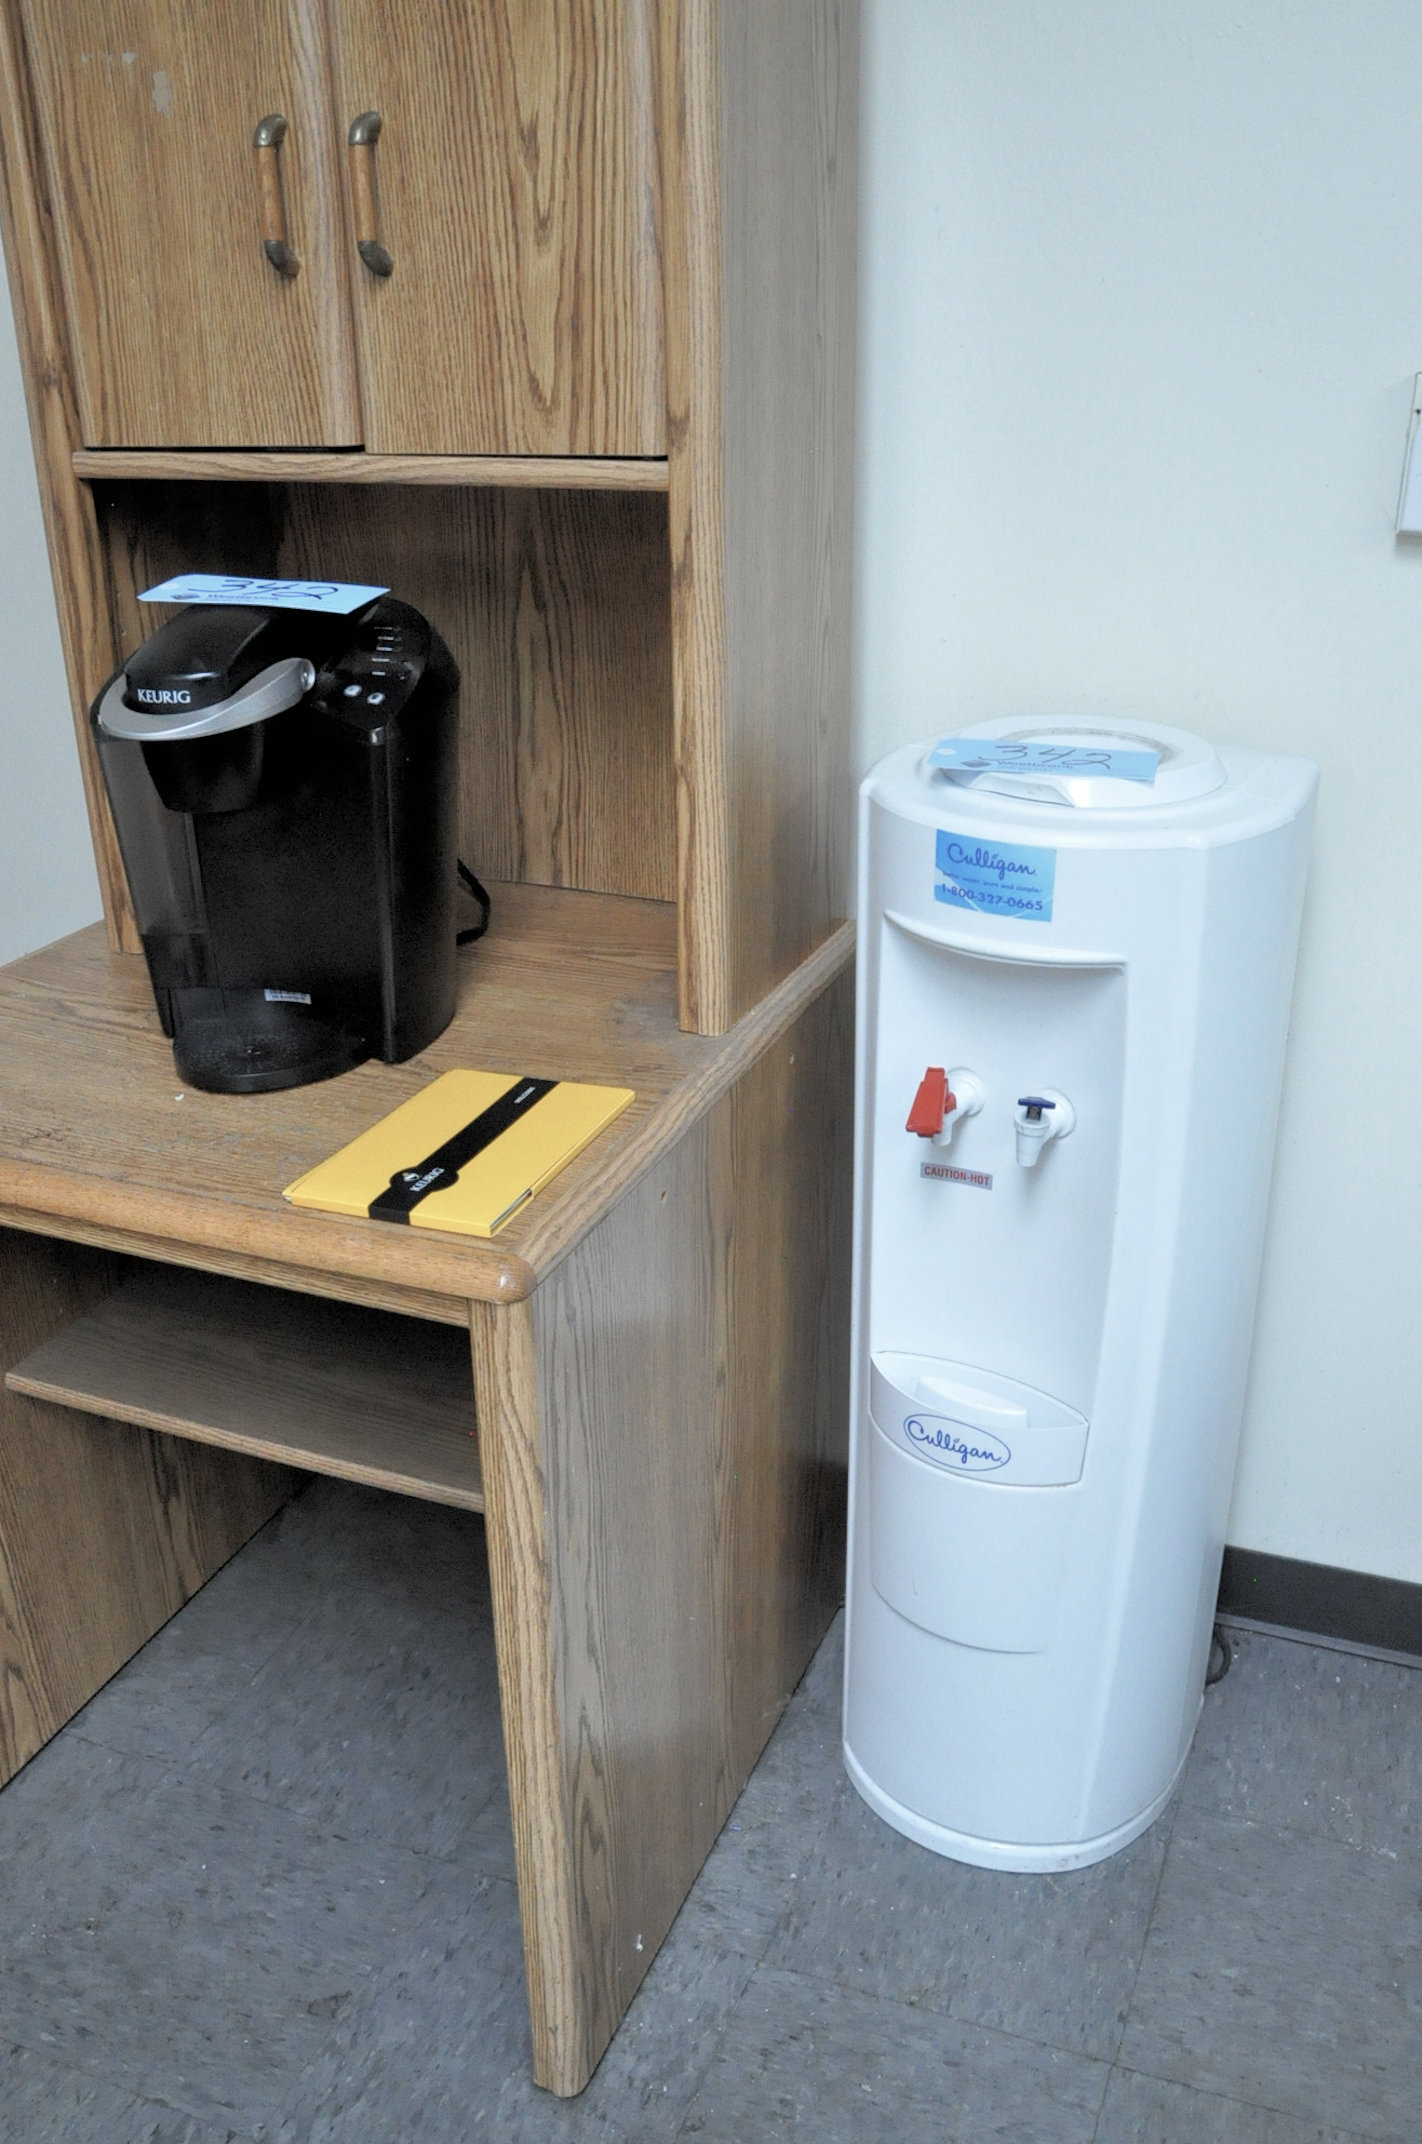 Lot 342 - Lot-Keurig Coffee Maker and Hot/Cold Bottle Water Dispenser with Stand